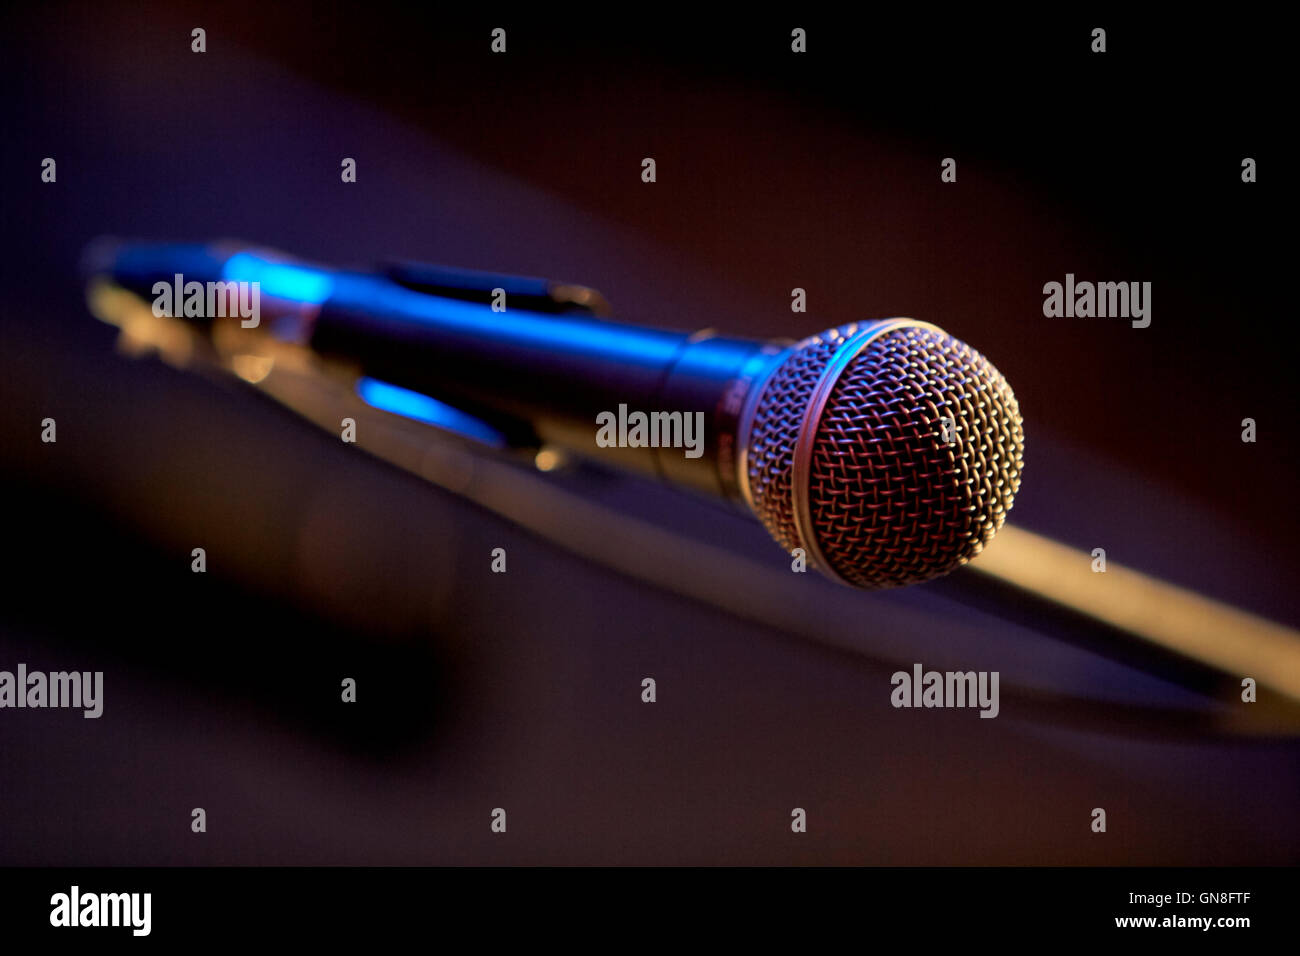 shure microphone on boom stand wired on stage in a theatre - Stock Image